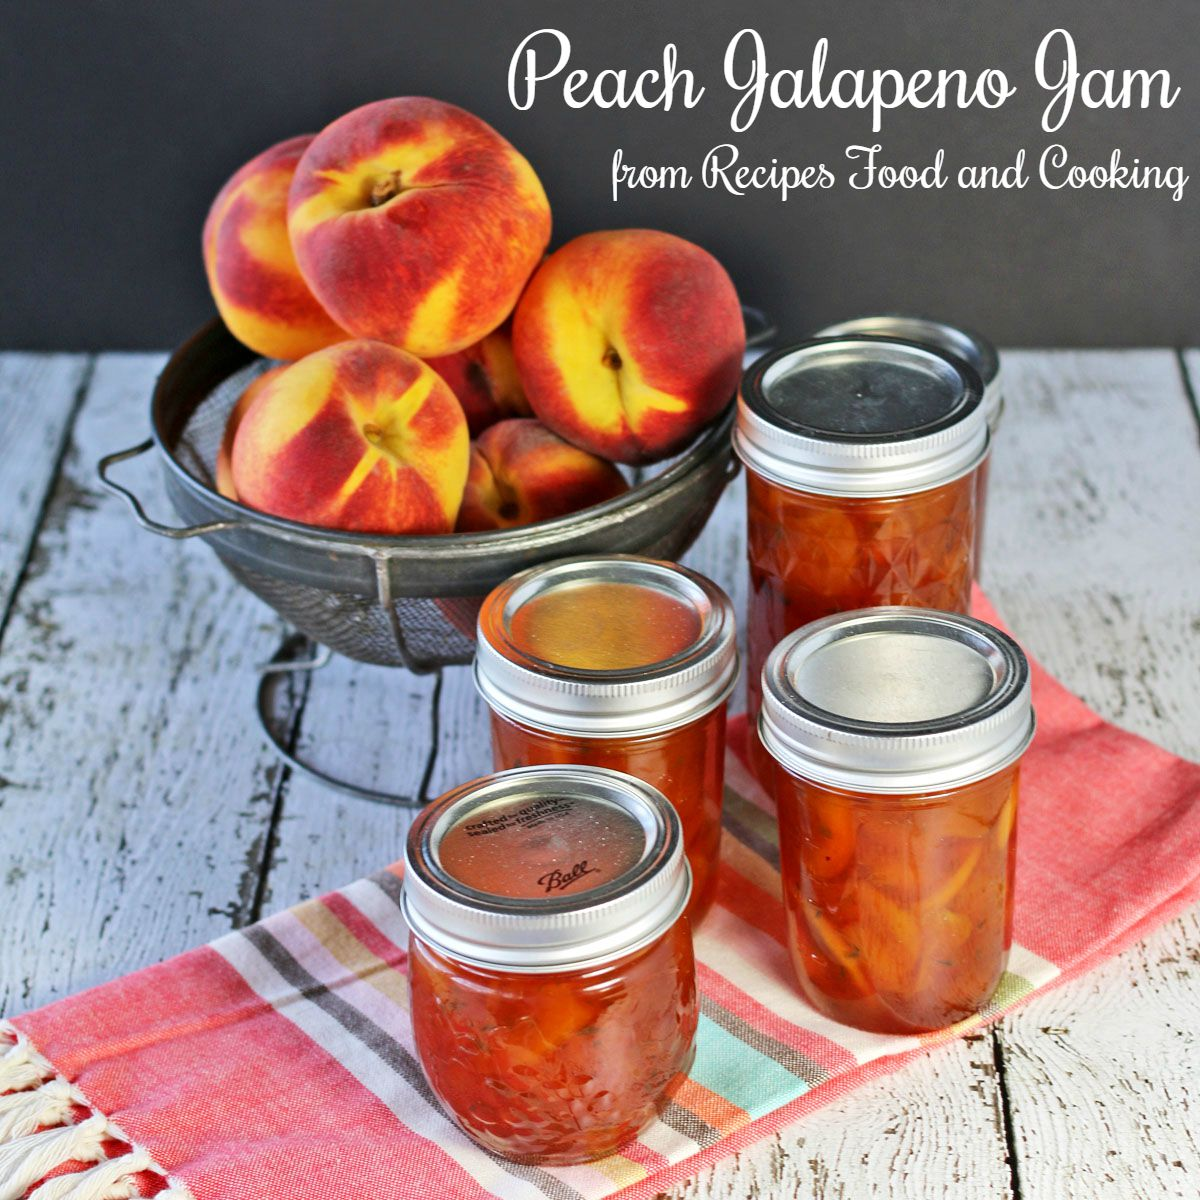 peach jalapeno jam recipes food and cooking